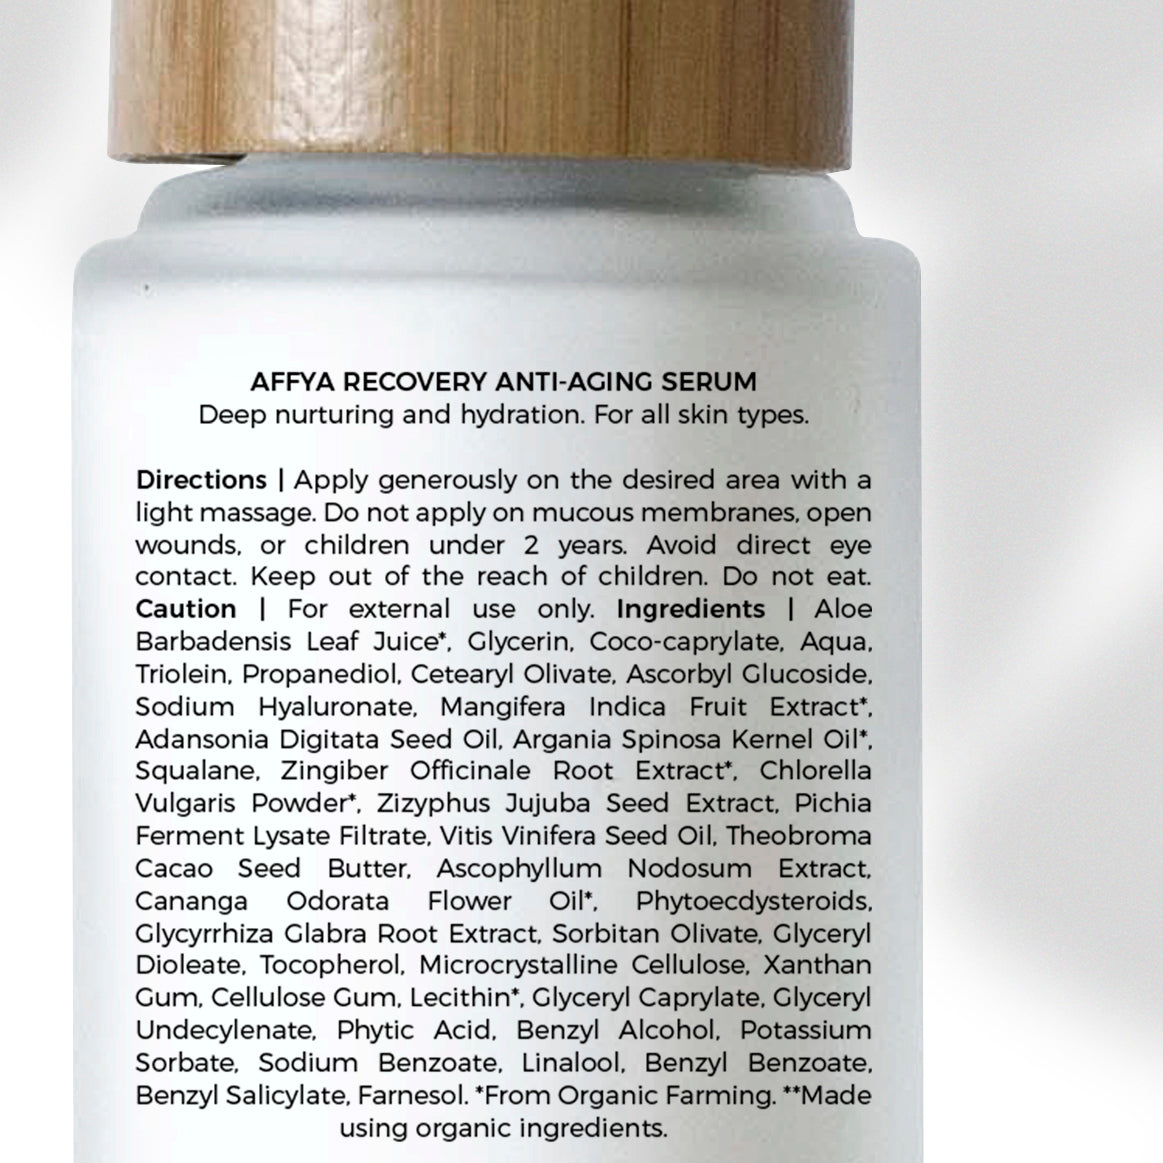 Recovery Antiaging Serum